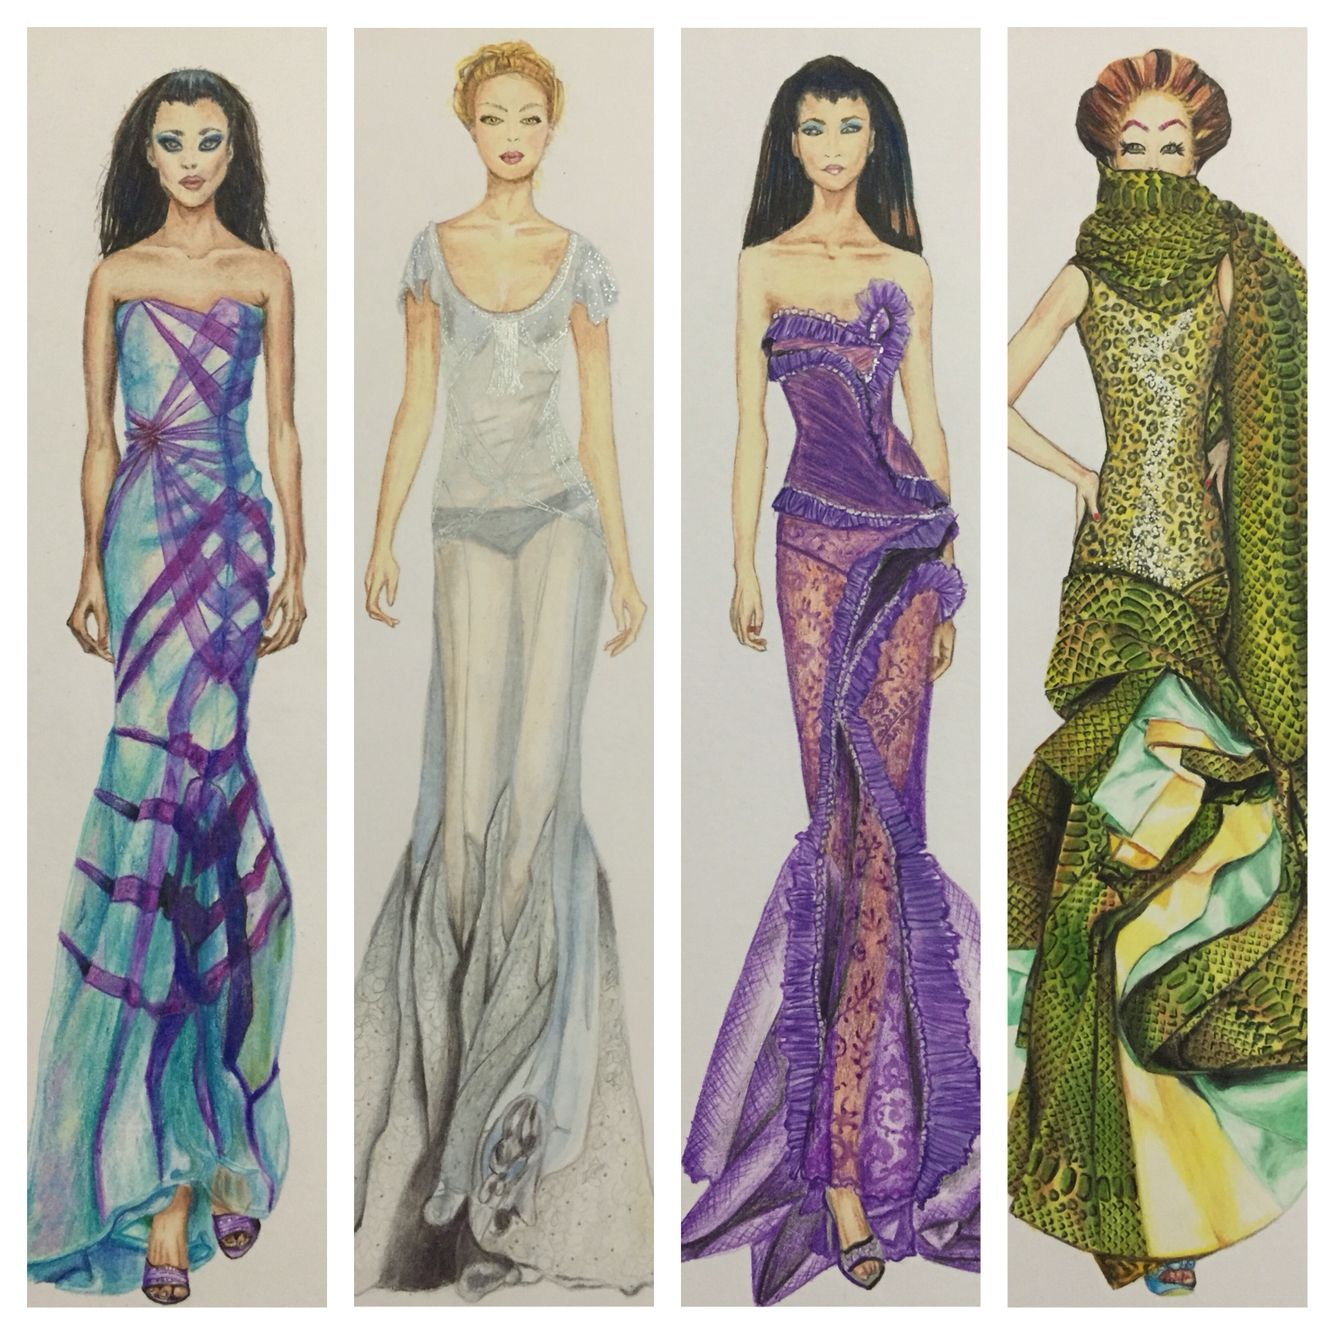 Fashion illustration sketches. Figurines de moda by Roxana Soria para Raokshna